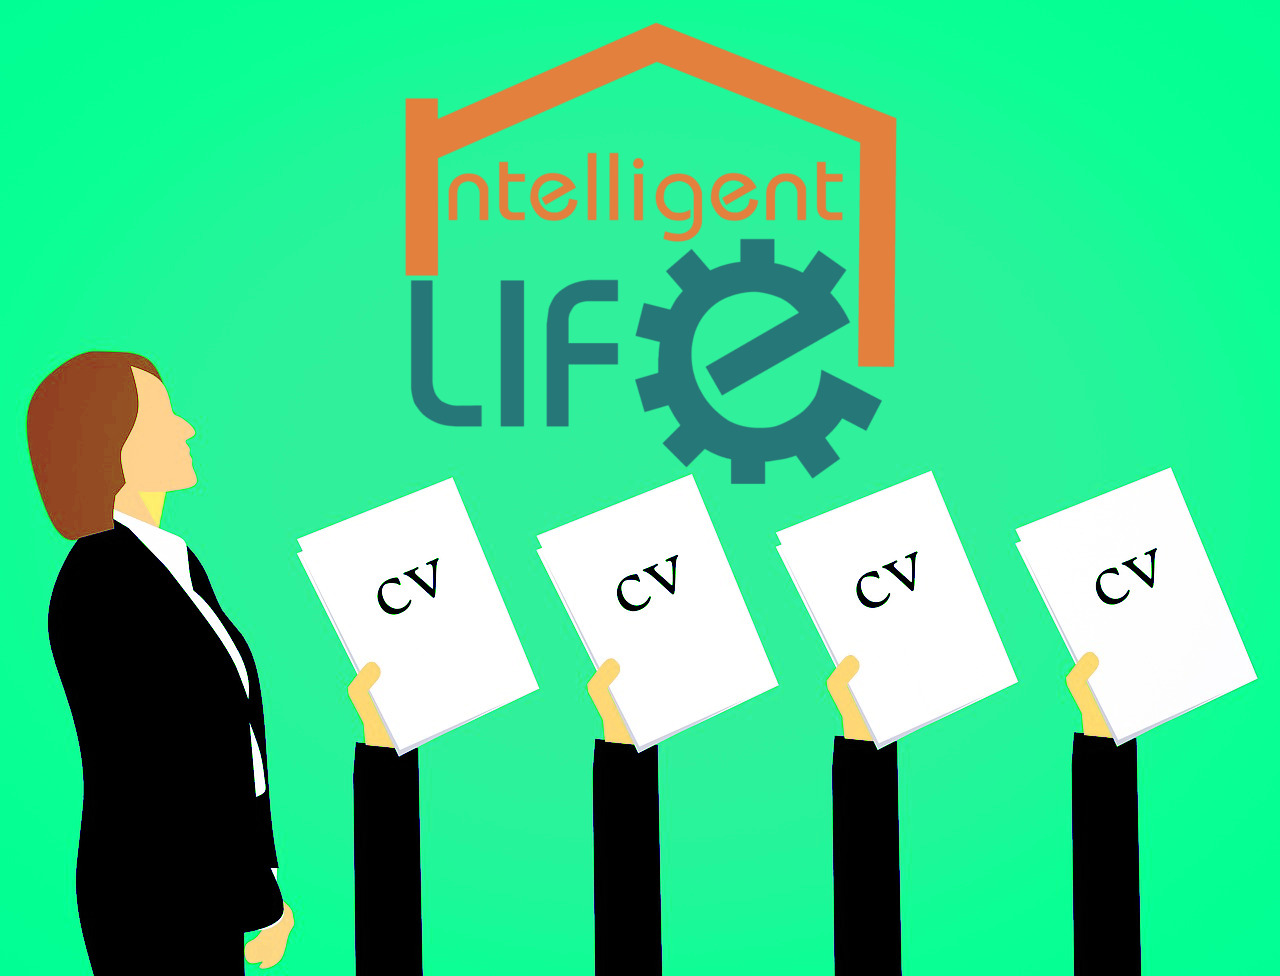 Software crm recursos humanos CV Intelligent life